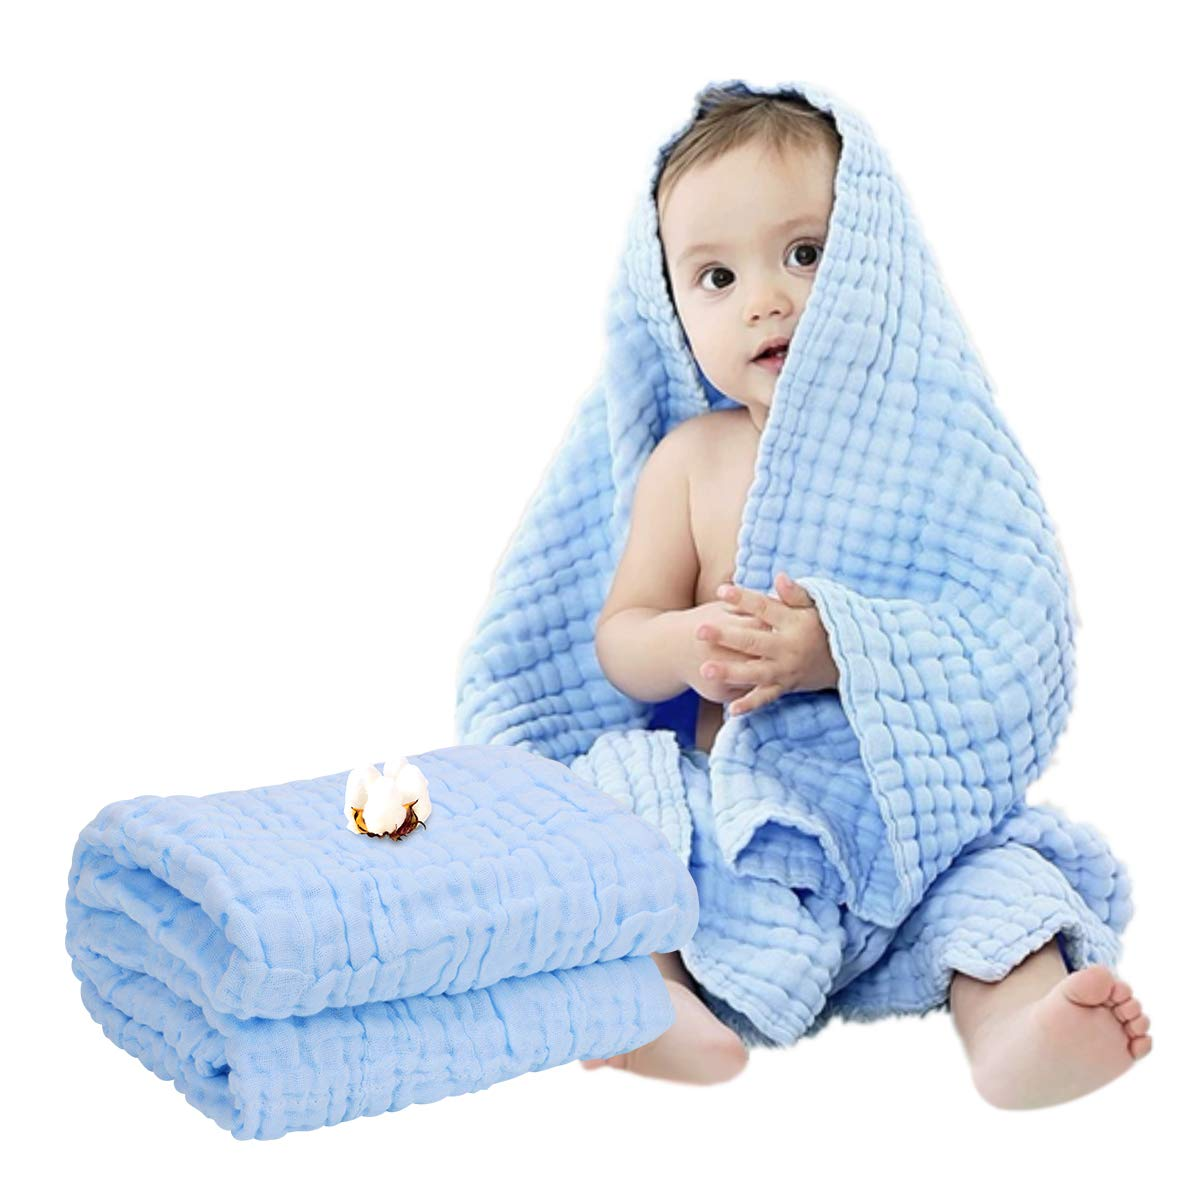 FOOK FISH Muslin Baby Towel Super Soft Cotton Gauze Baby Bath Towel 6 Layers Infant Towel Newborn Towel Blanket Suitable for Baby's Delicate Skin 40 x 40inches Blue by Mom's Love